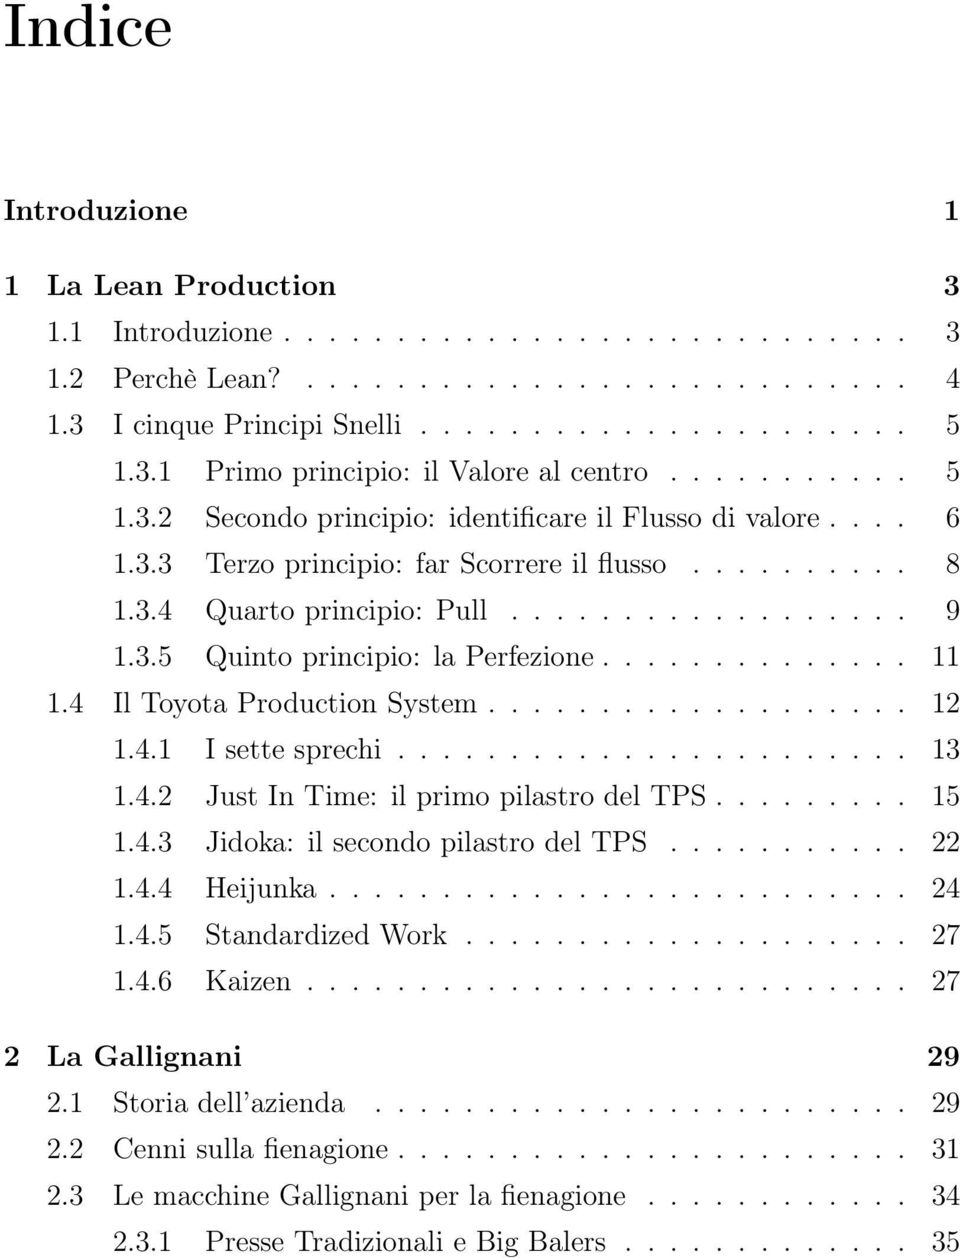 ............. 11 1.4 Il Toyota Production System................... 12 1.4.1 I sette sprechi....................... 13 1.4.2 Just In Time: il primo pilastro del TPS......... 15 1.4.3 Jidoka: il secondo pilastro del TPS.